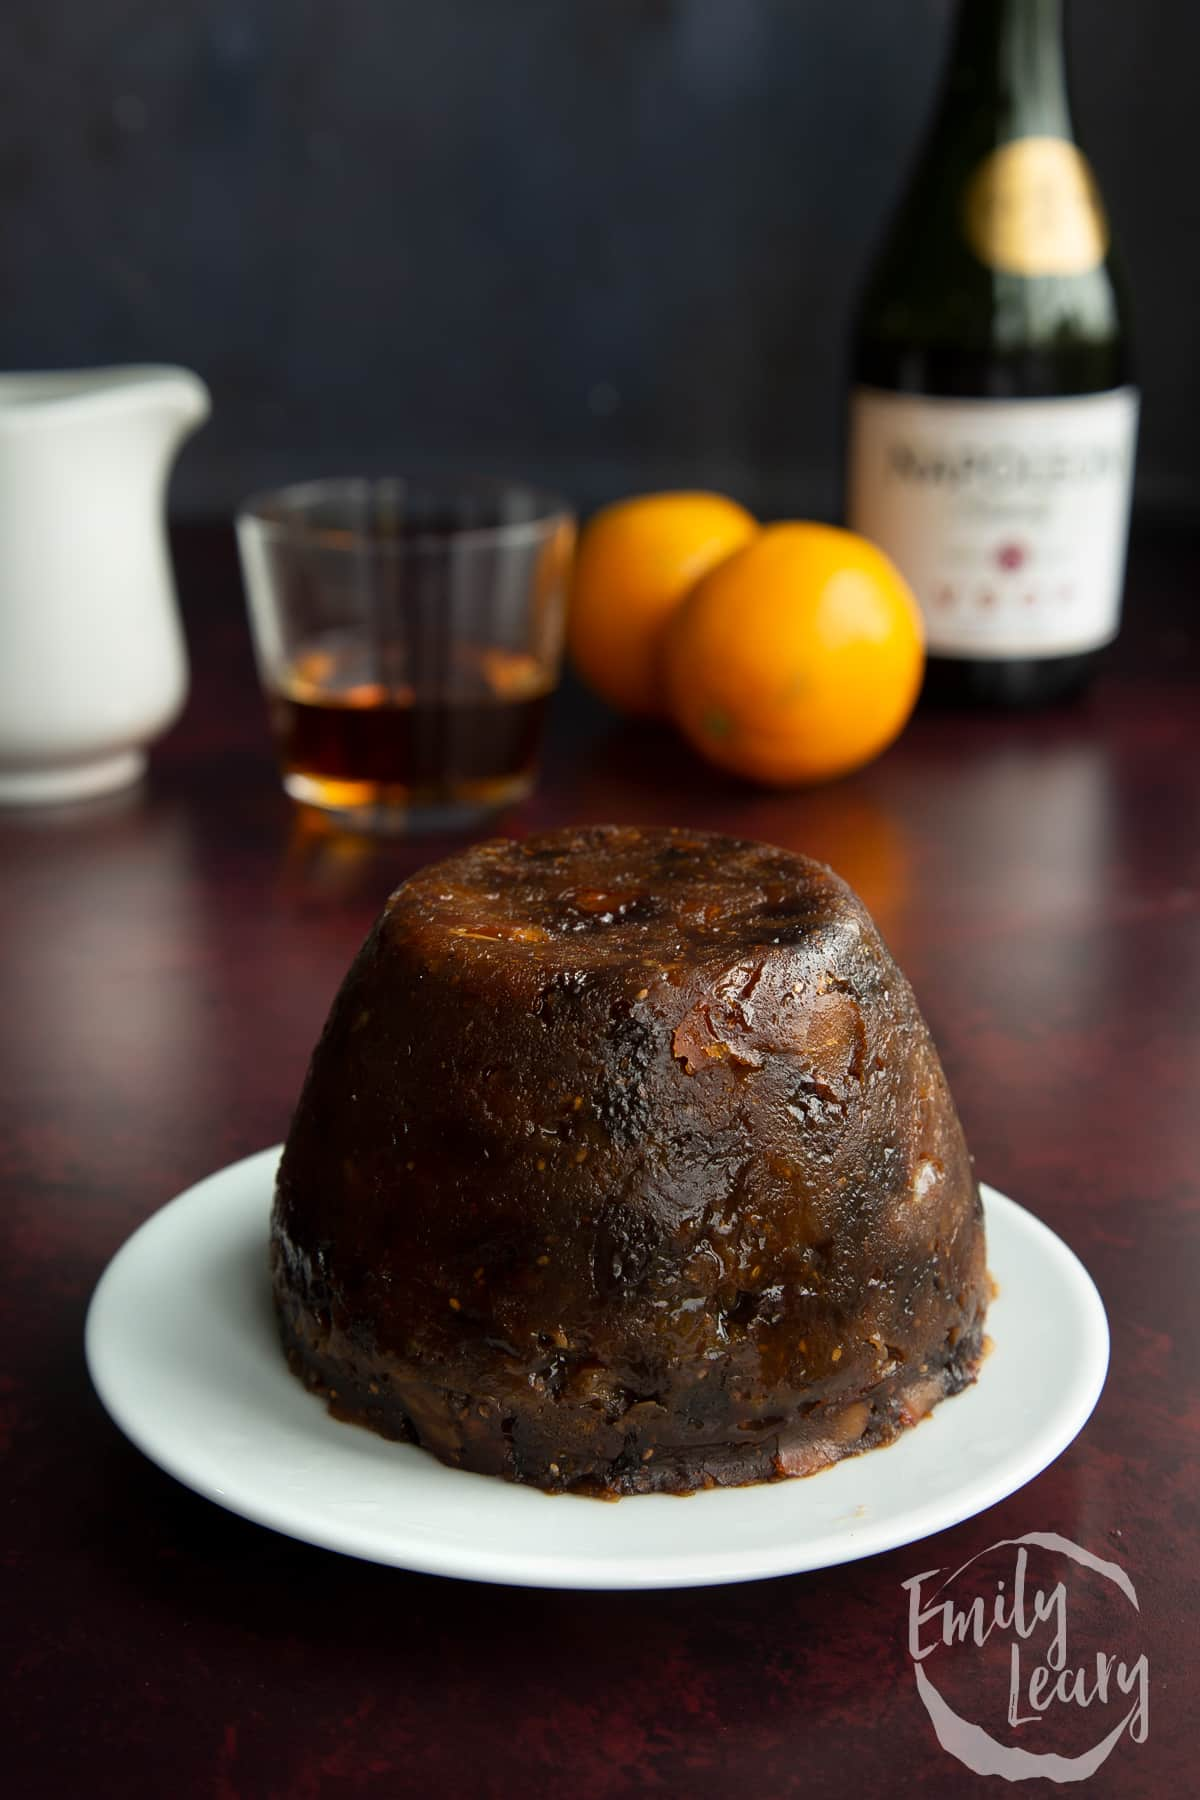 Steamed vegan Christmas pudding on a small white plate.